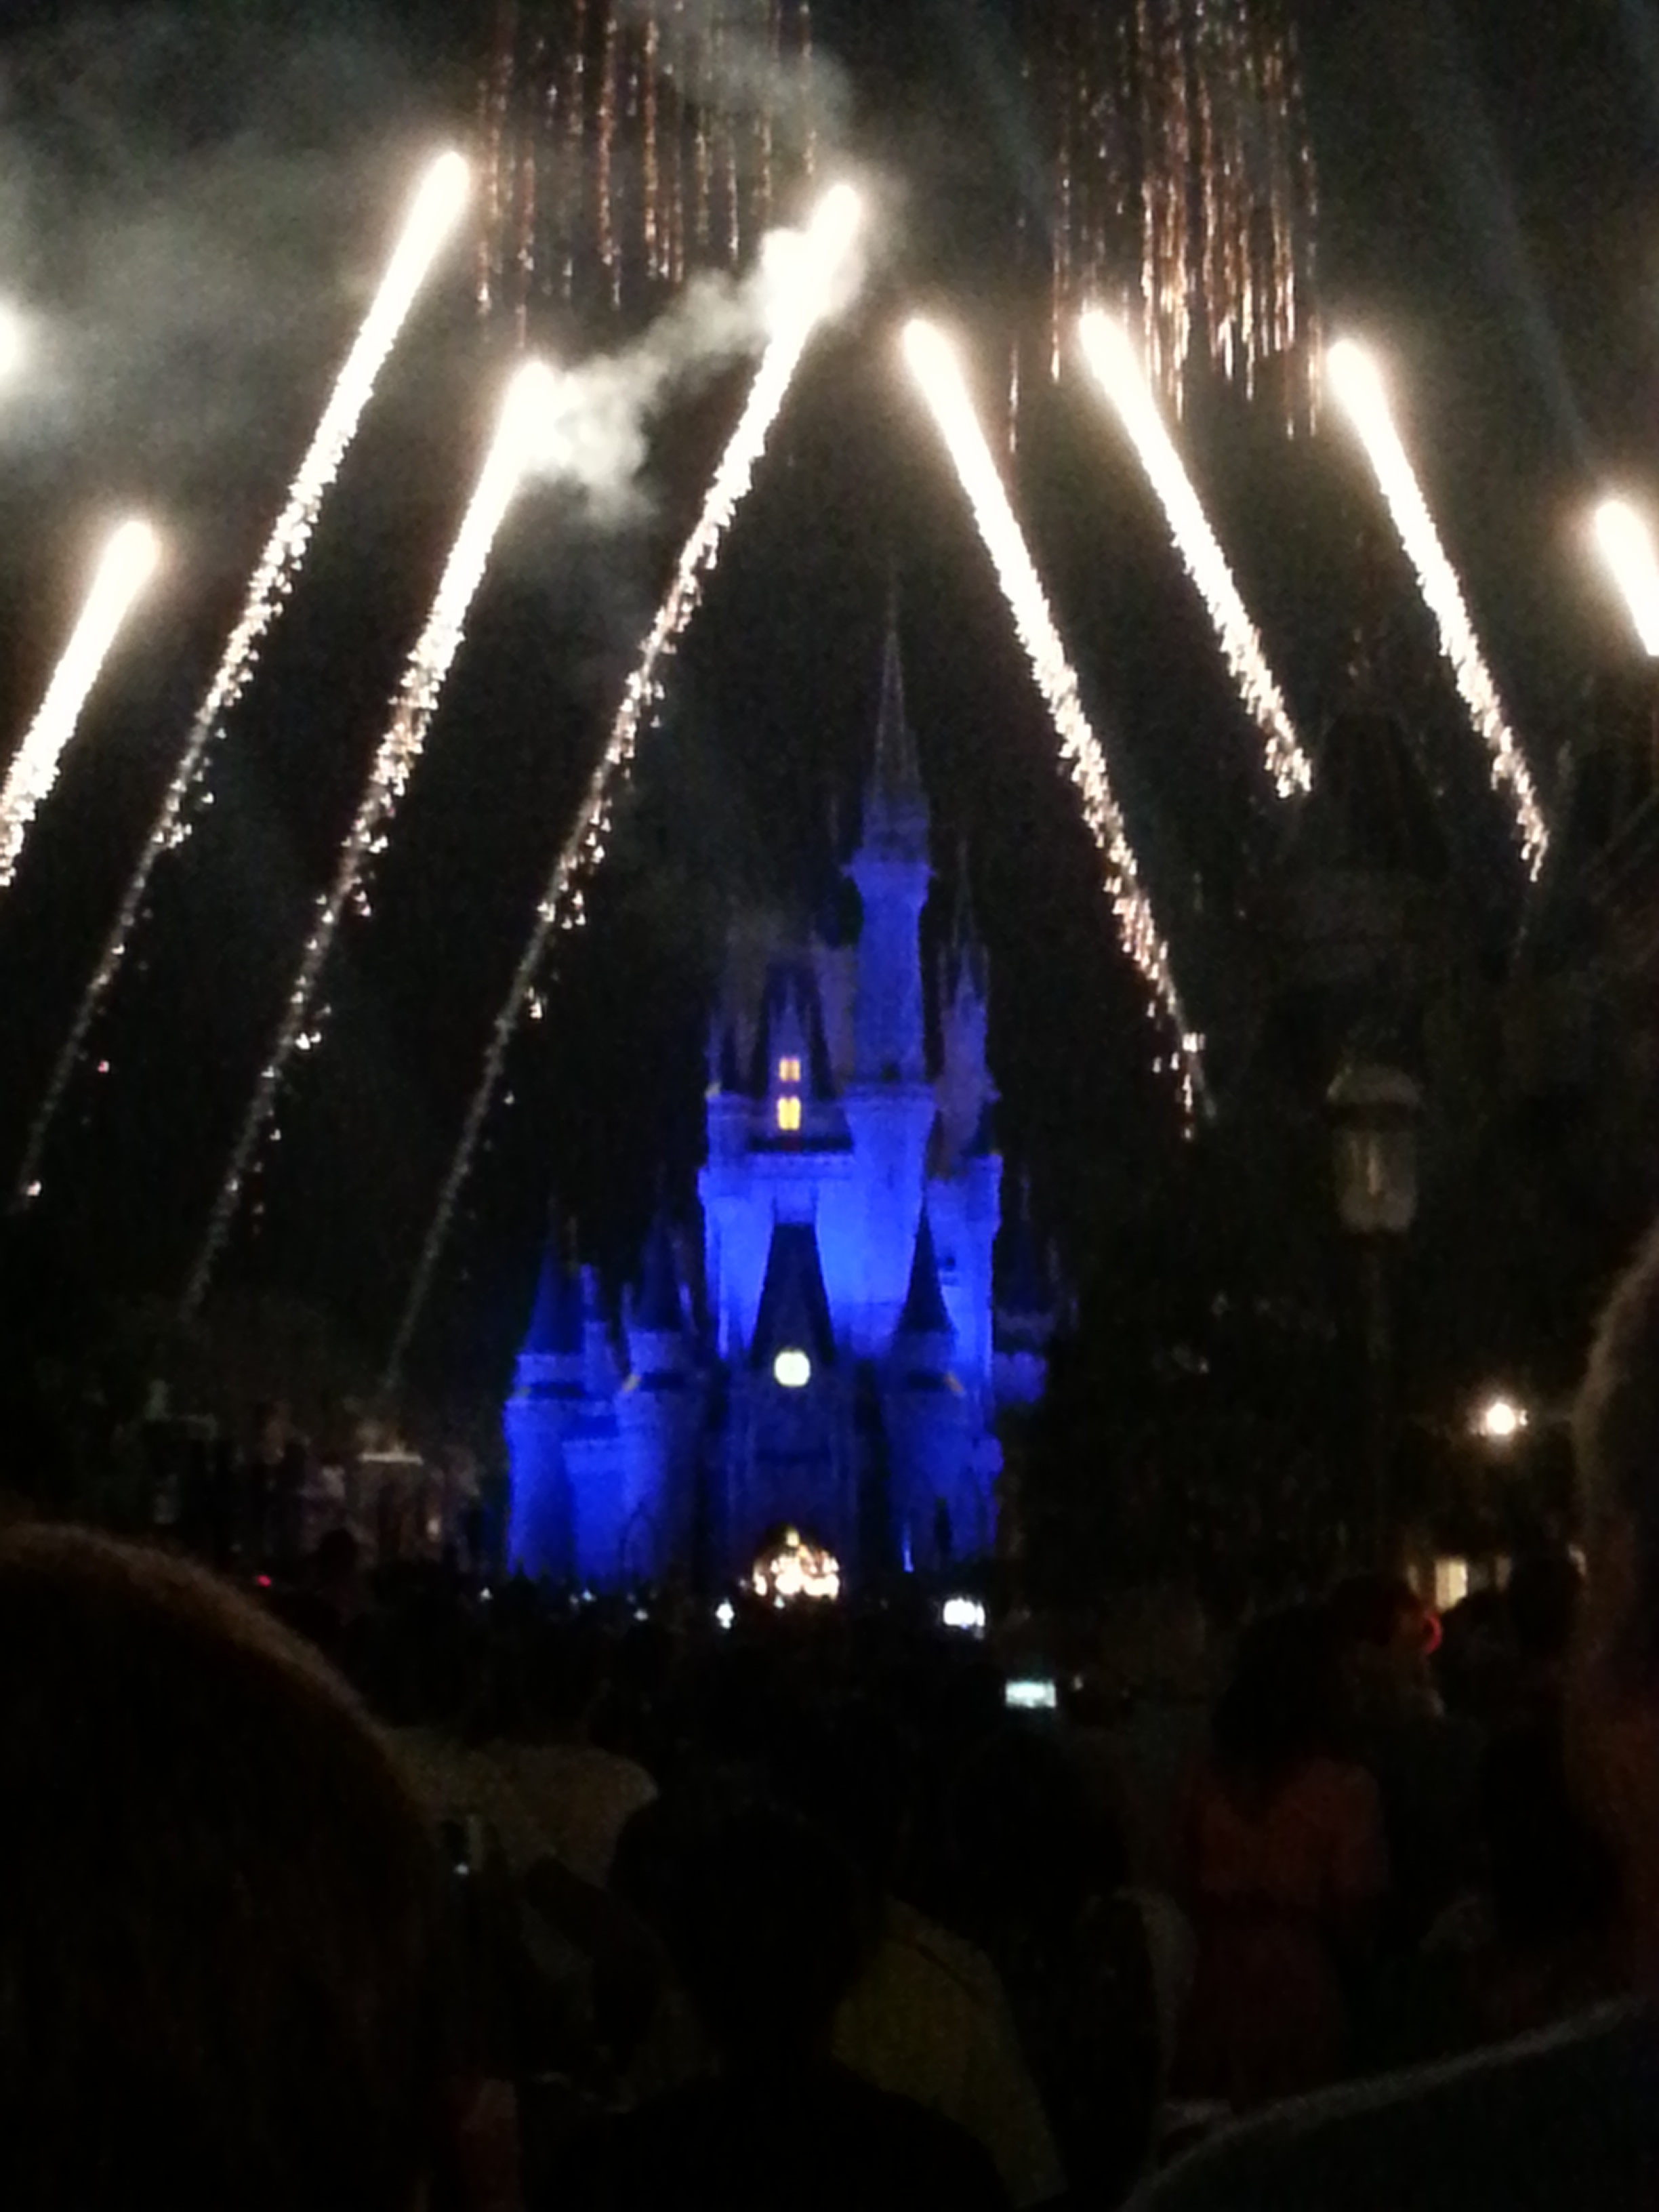 Terrific Tuesdays: Wishes Nighttime Spectacular